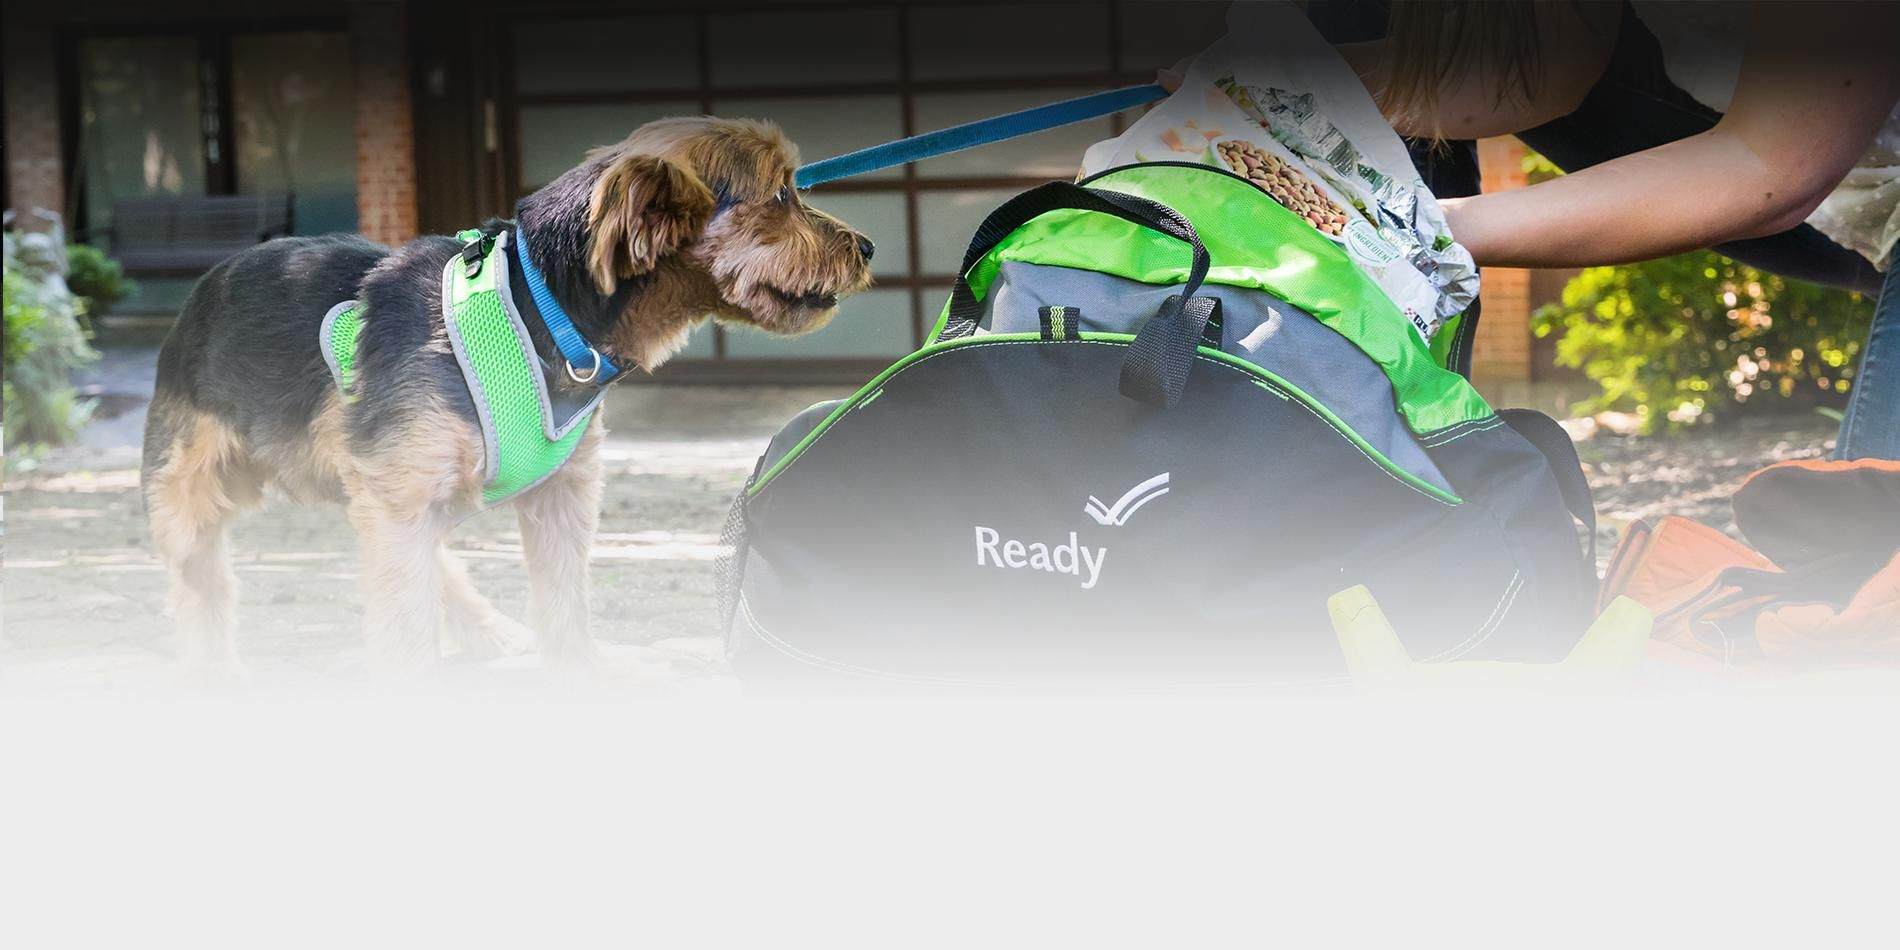 A picture of a dog next to an emergency supply kit with